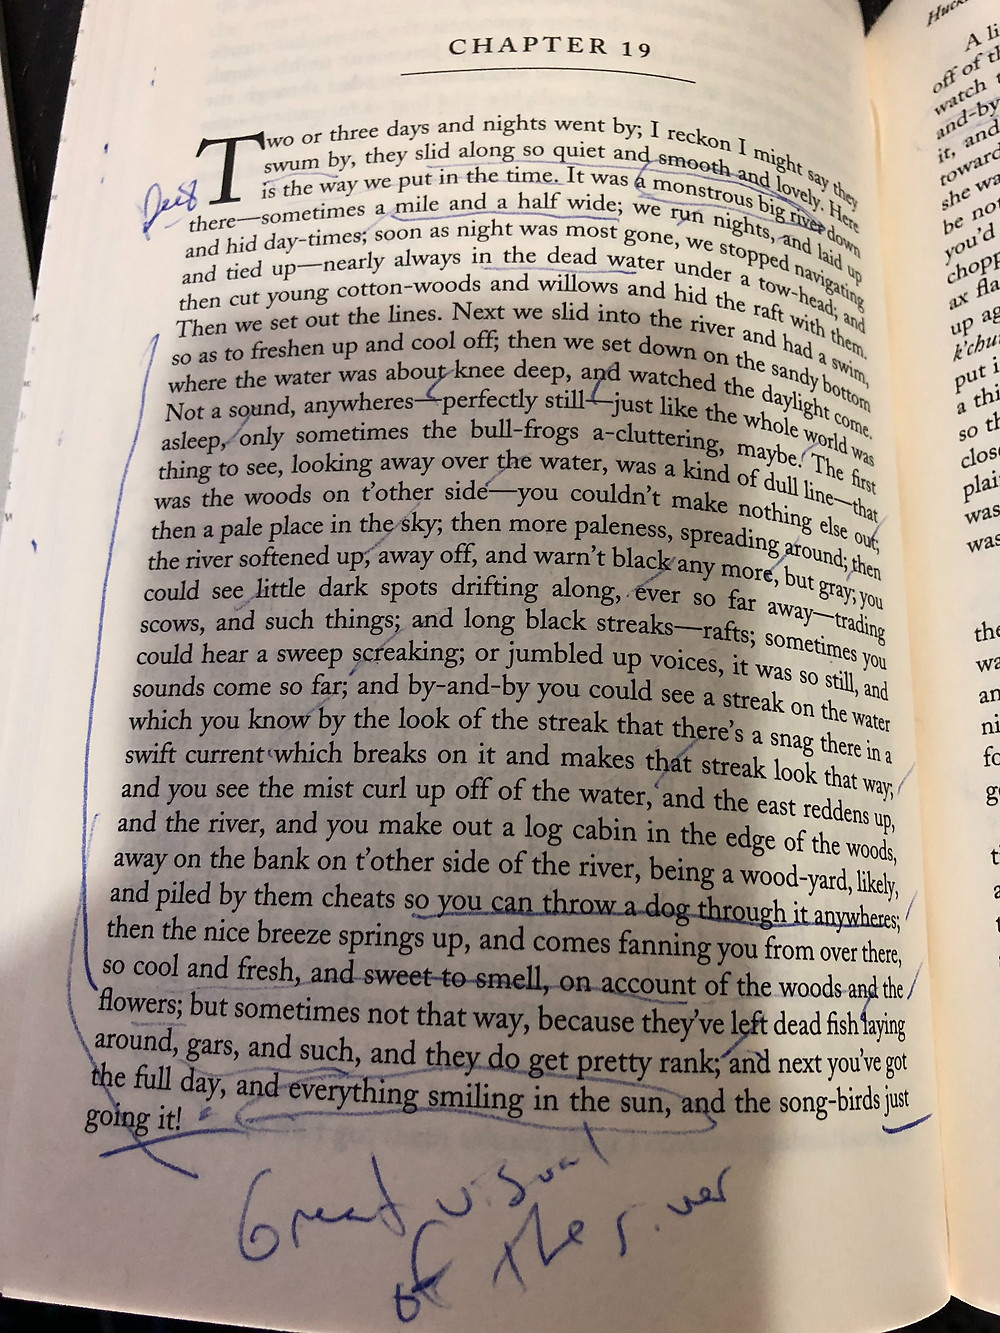 Huckleberry Finn B&N edition Chapter 19 on the river highlighted